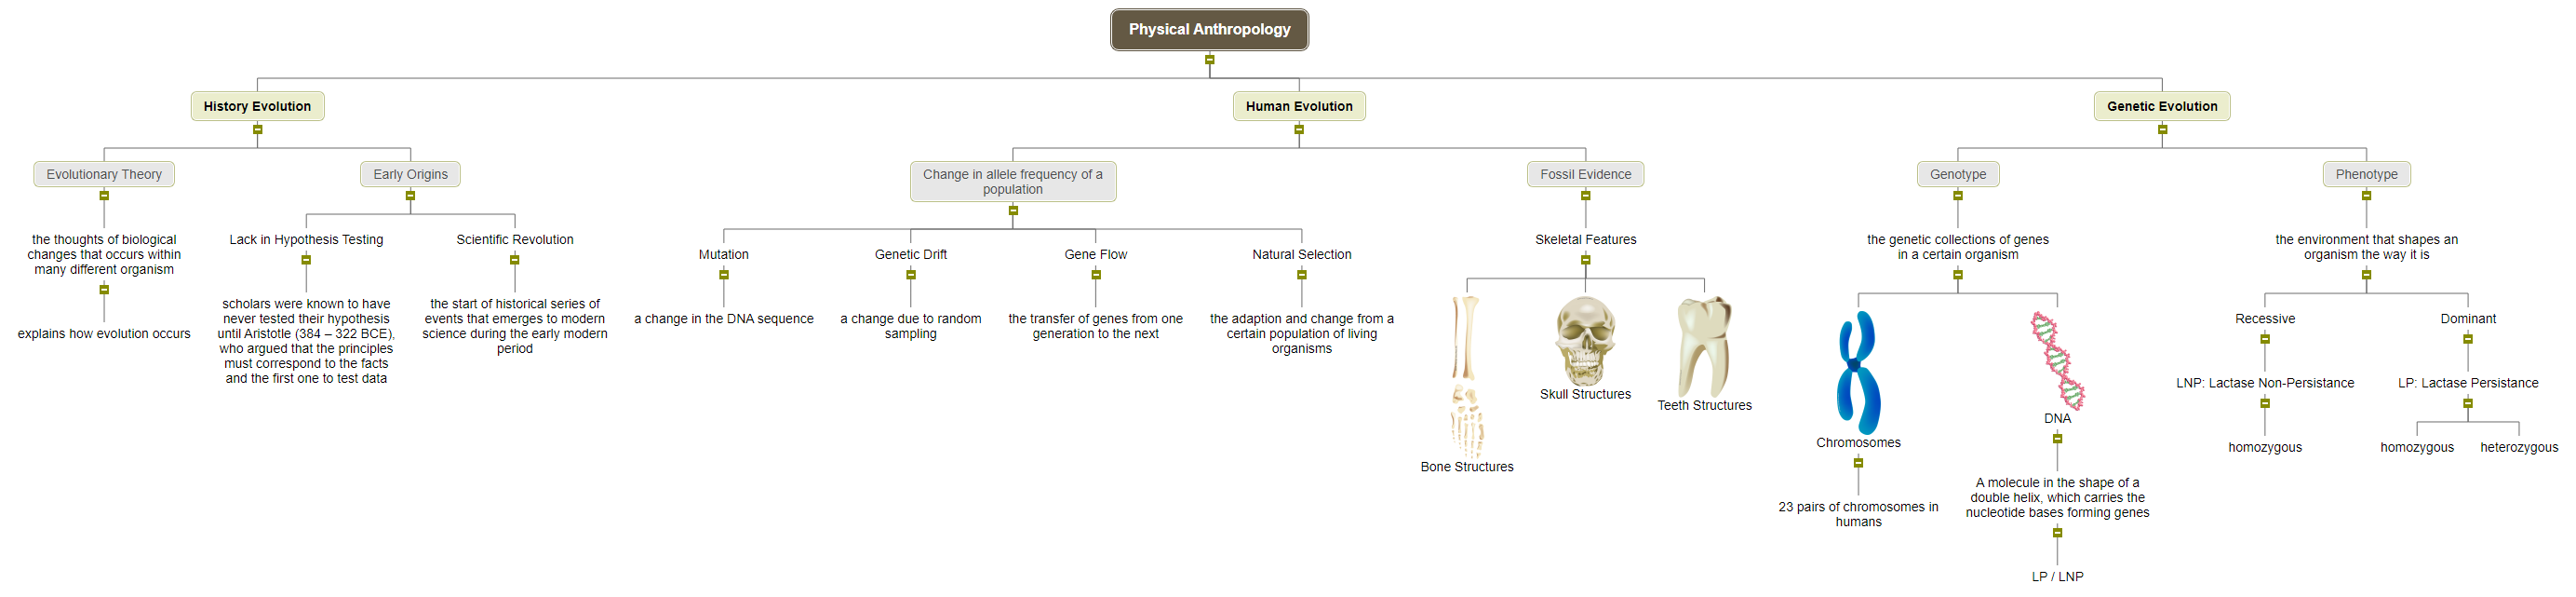 Physical Anthropology Mind Map